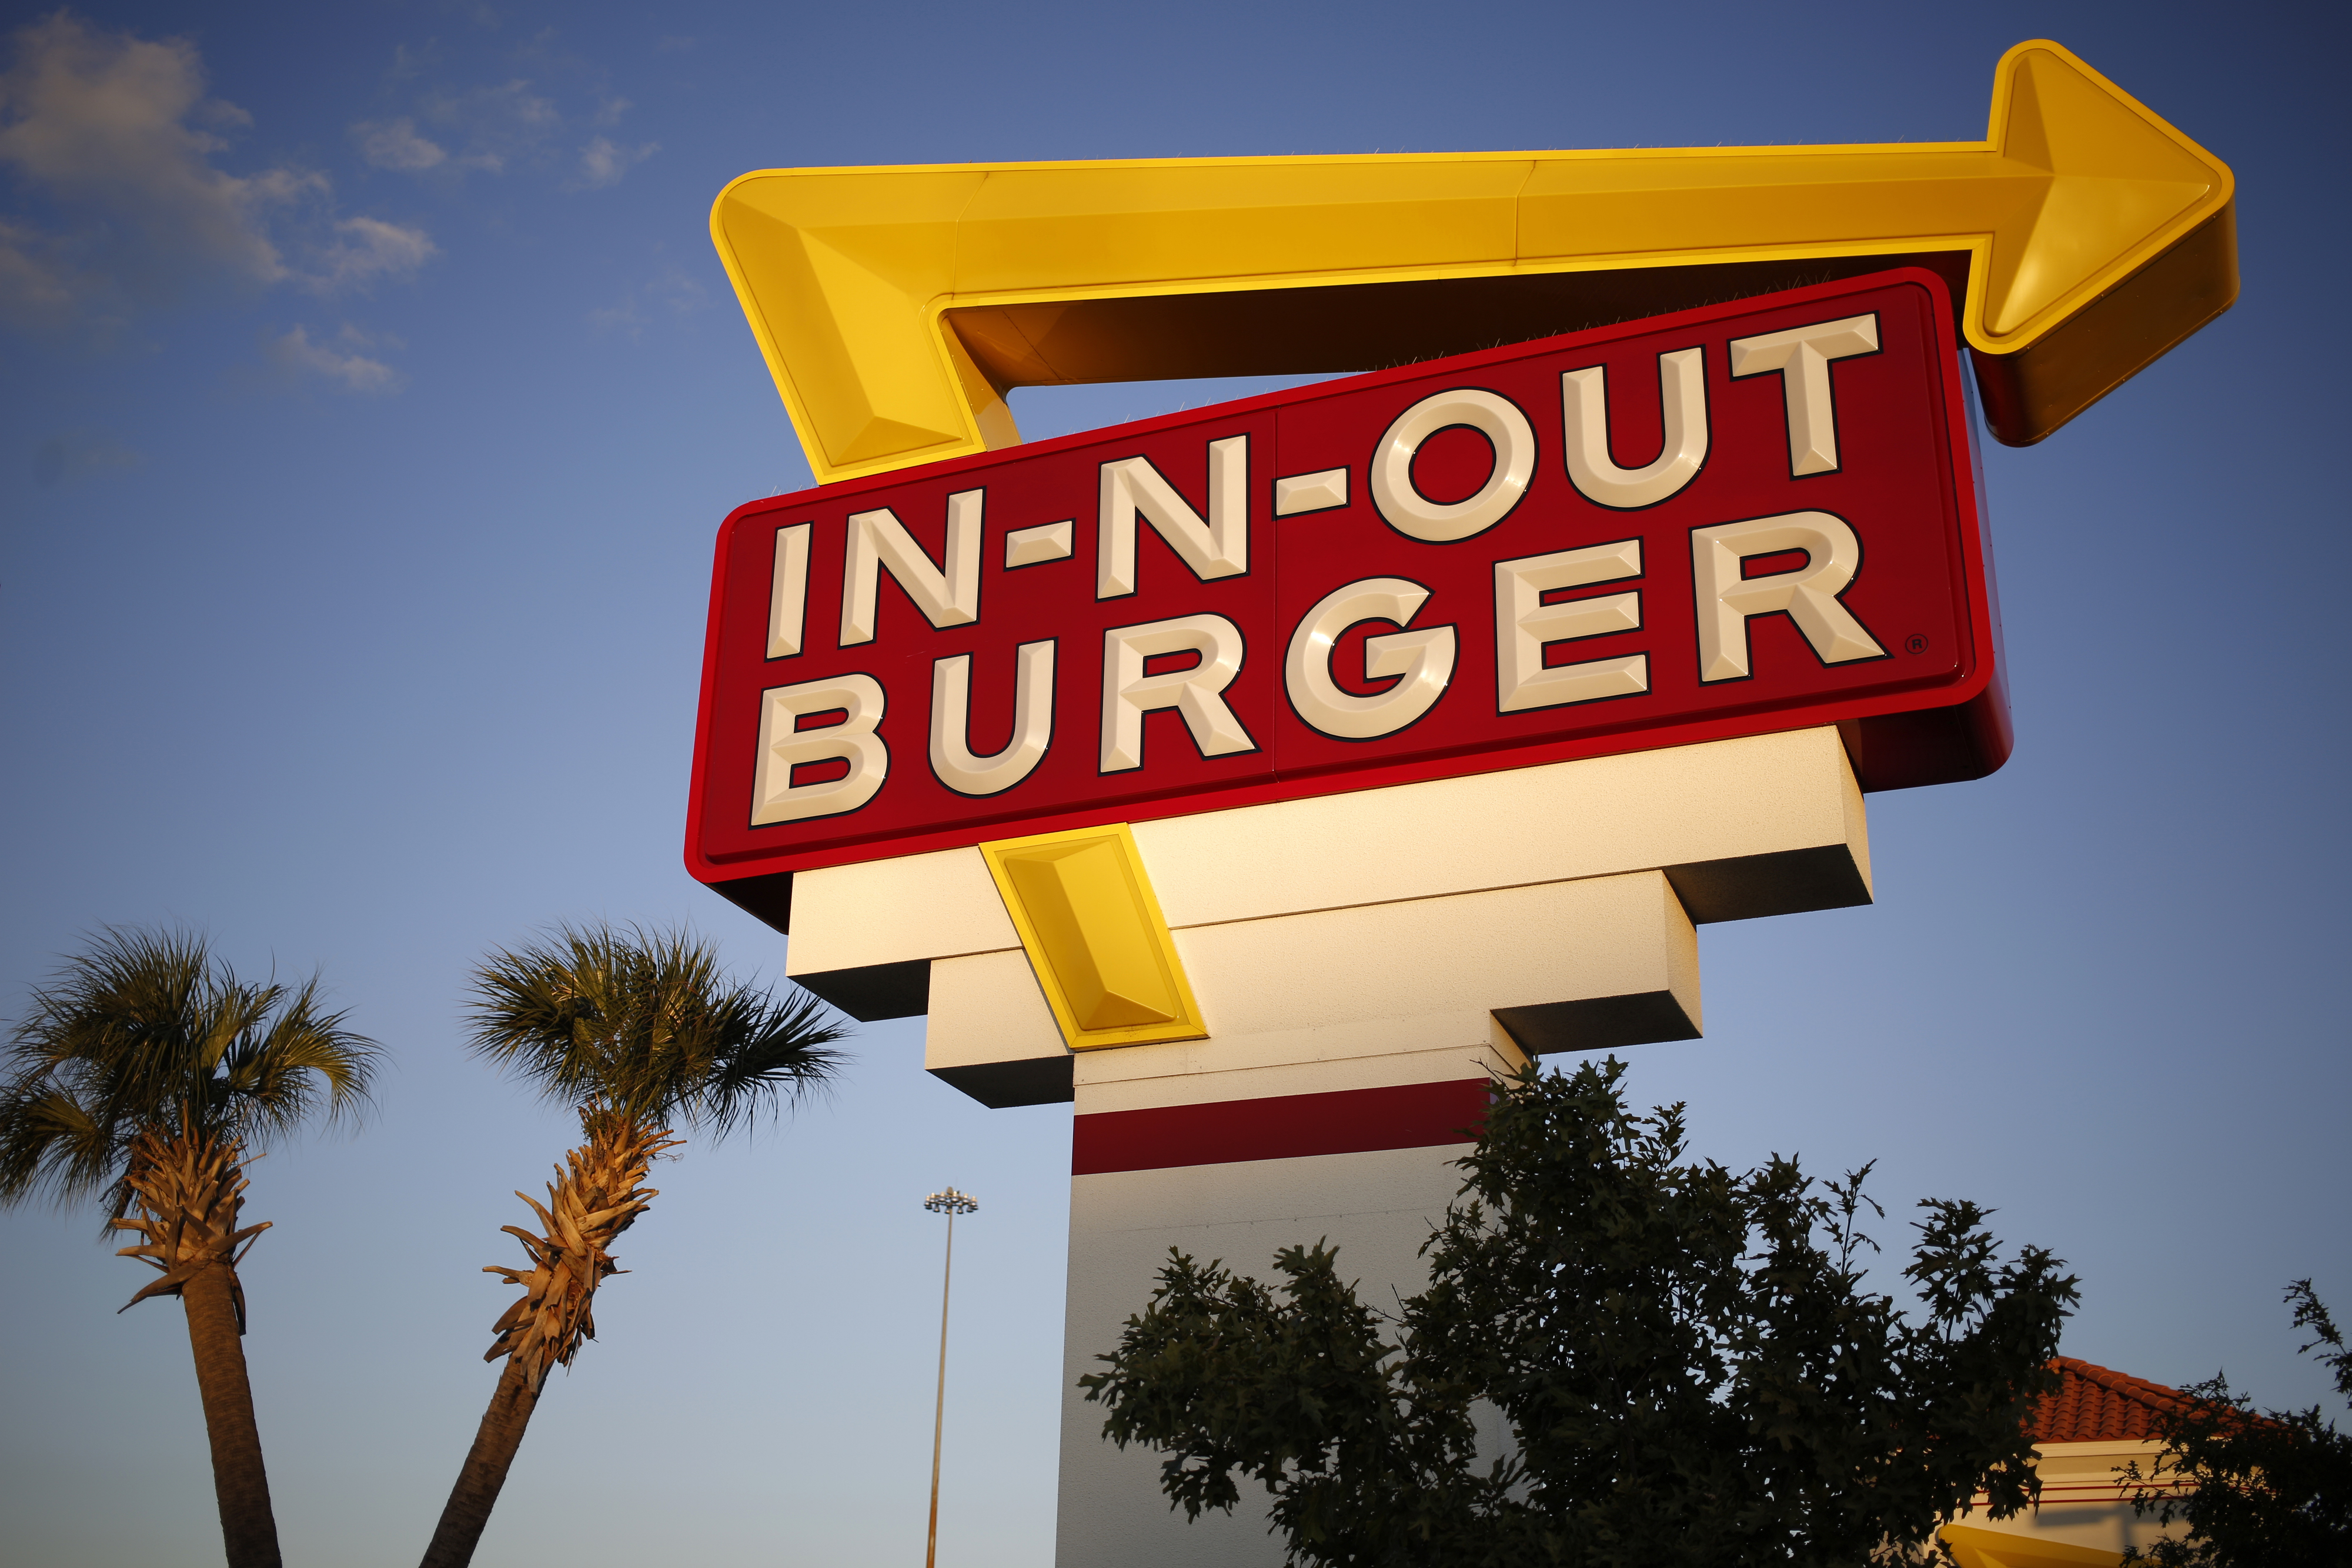 Signage is displayed outside an In-N-Out Burger restaurant in Fort Worth, Texas, U.S., on Monday, Oct. 24, 2016.